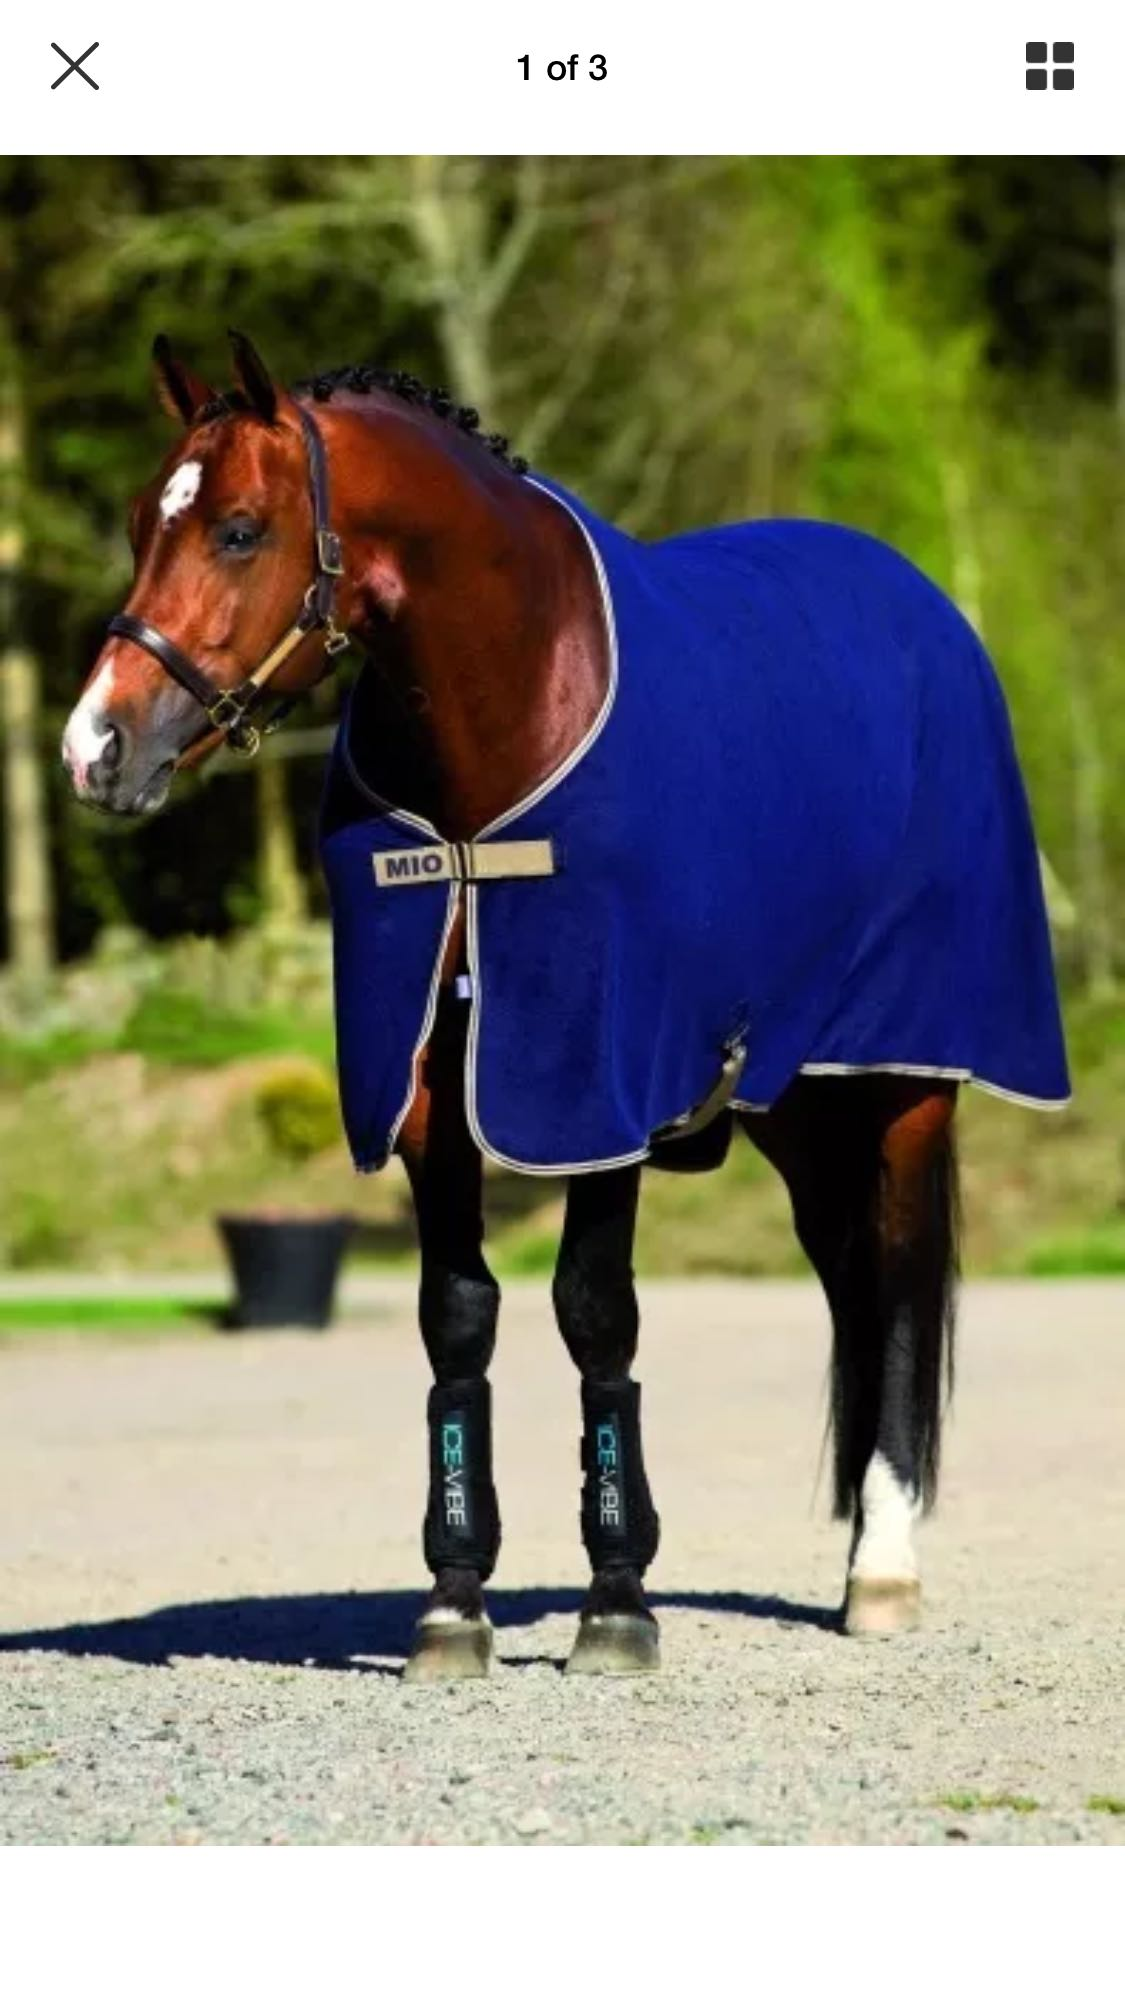 Amigo headcollar amp travel rug - Walesby, Newark, Notts - All new never used Rug 6'6 headcollar full not as blue in real life more navy! - Walesby, Newark, Notts